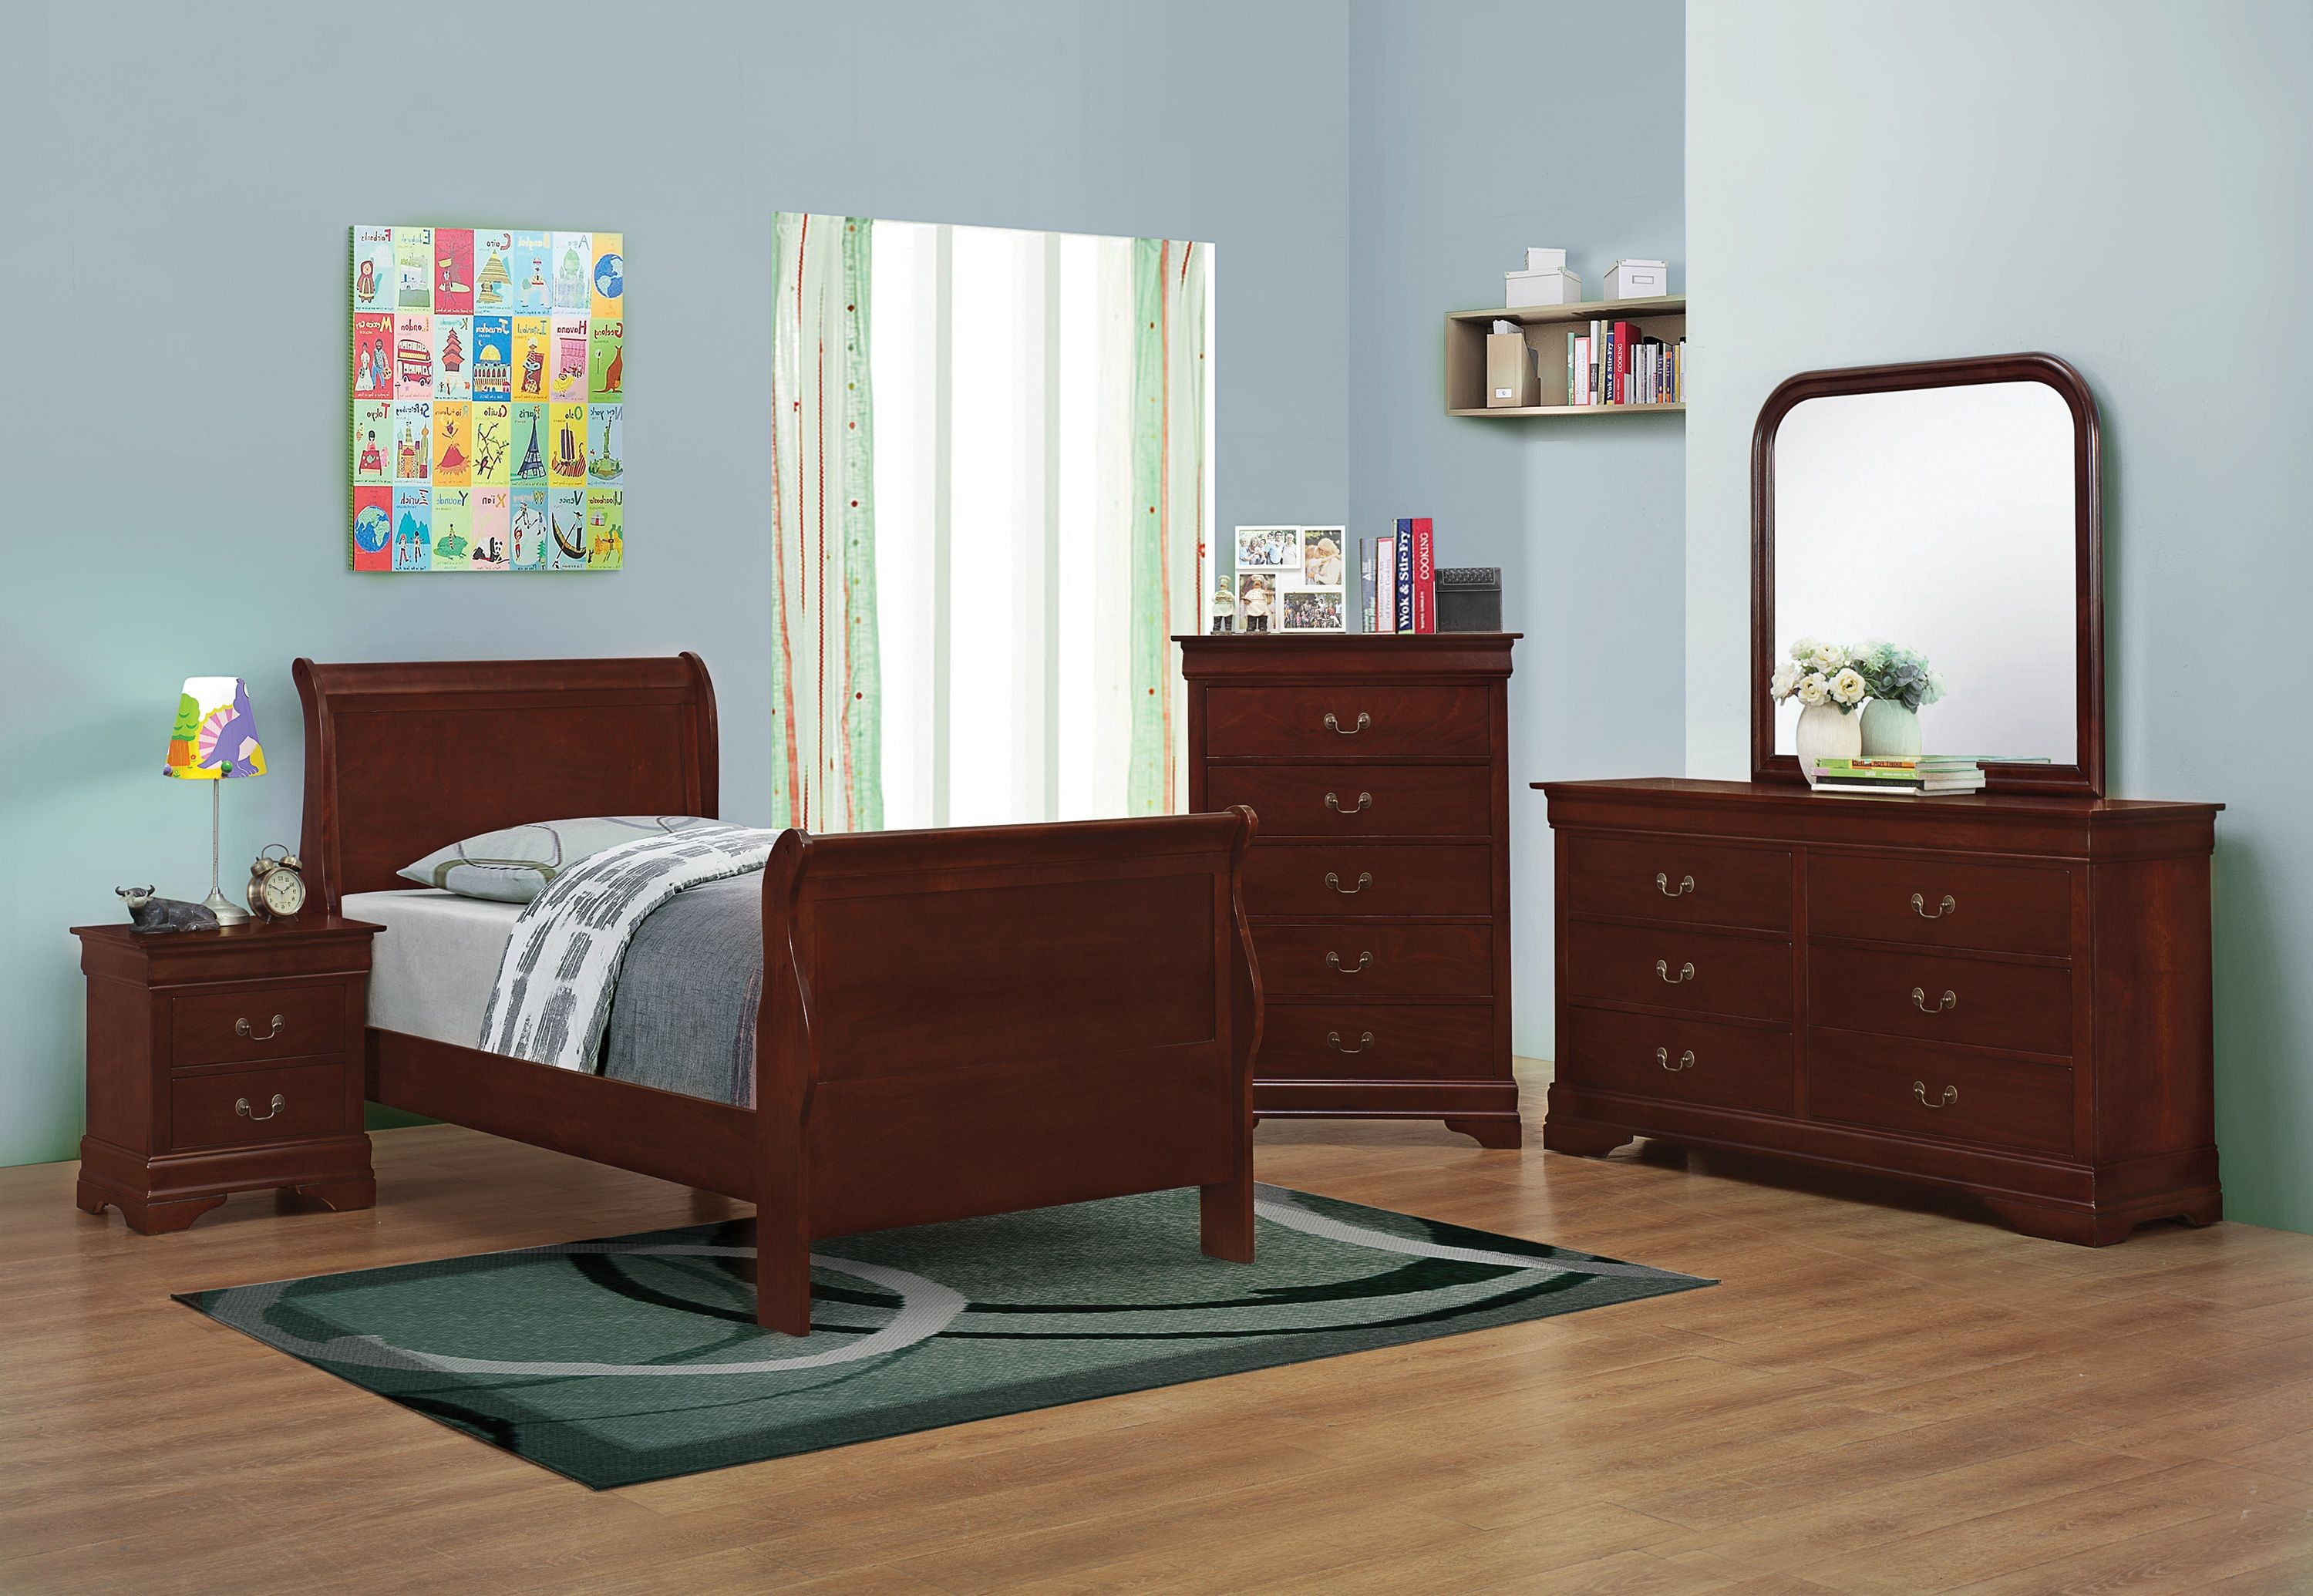 Louis philippe reddish brown youth sleigh bedroom set from coaster coleman furniture for Louis philippe bedroom collection